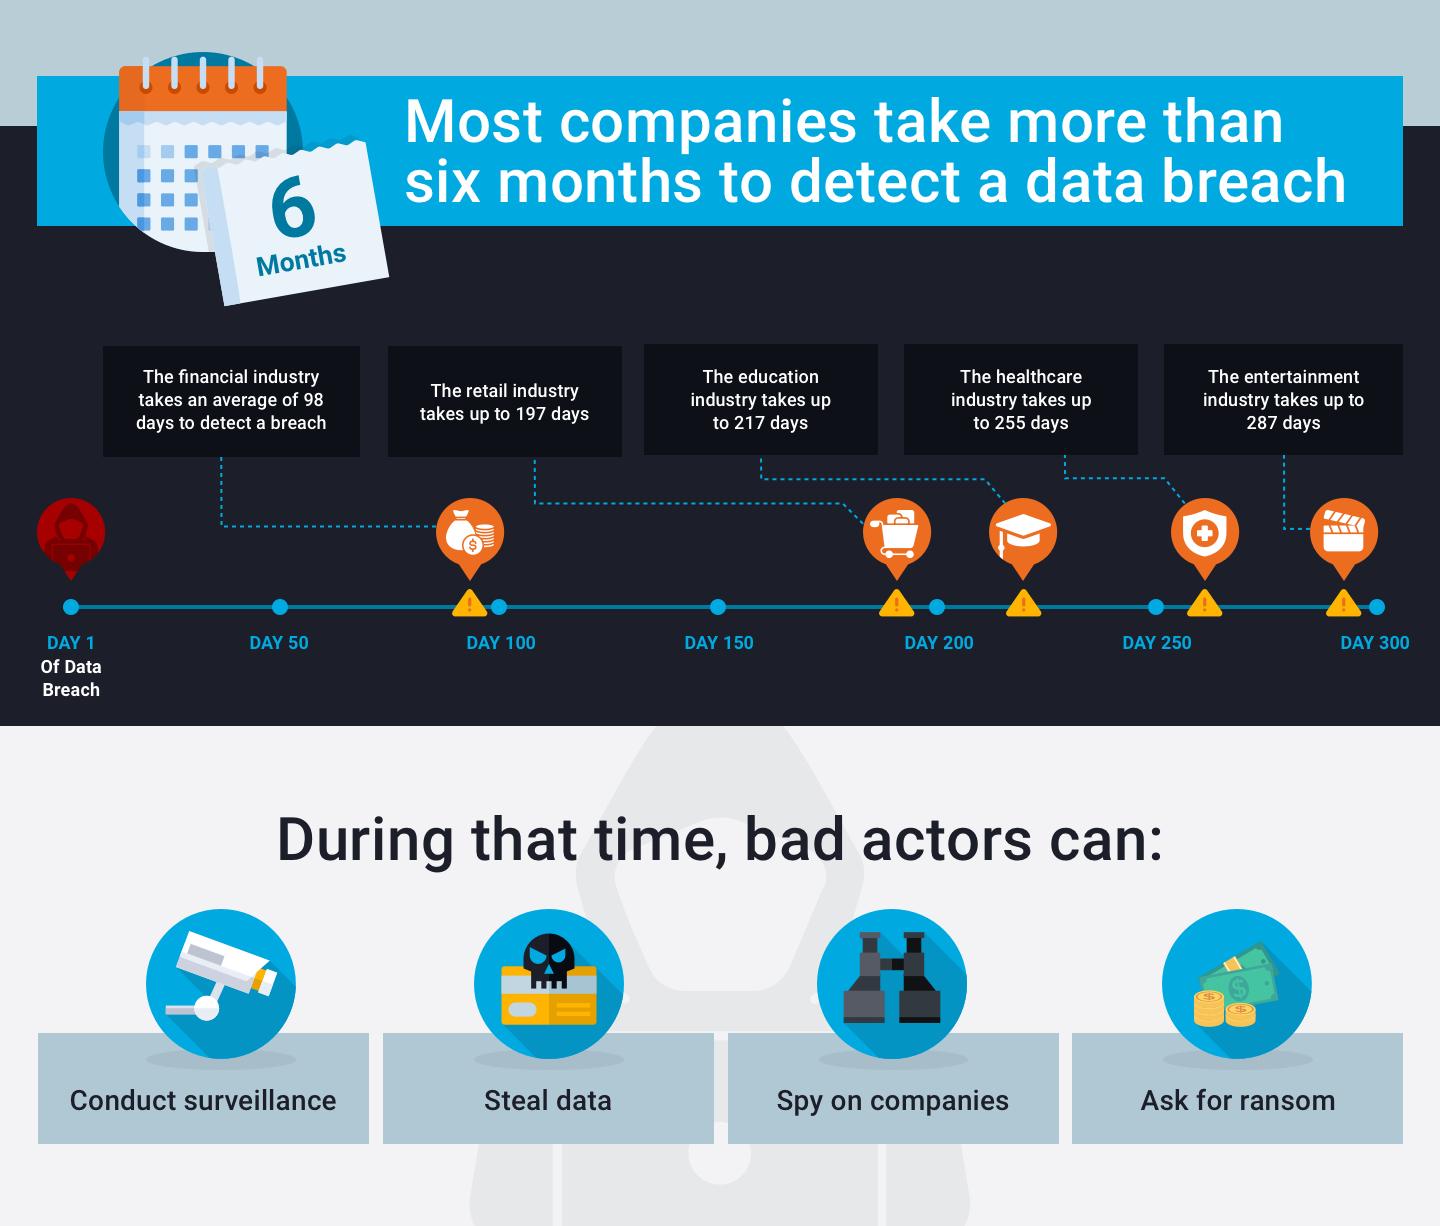 Most companies take more than 6 months to detect a data breach